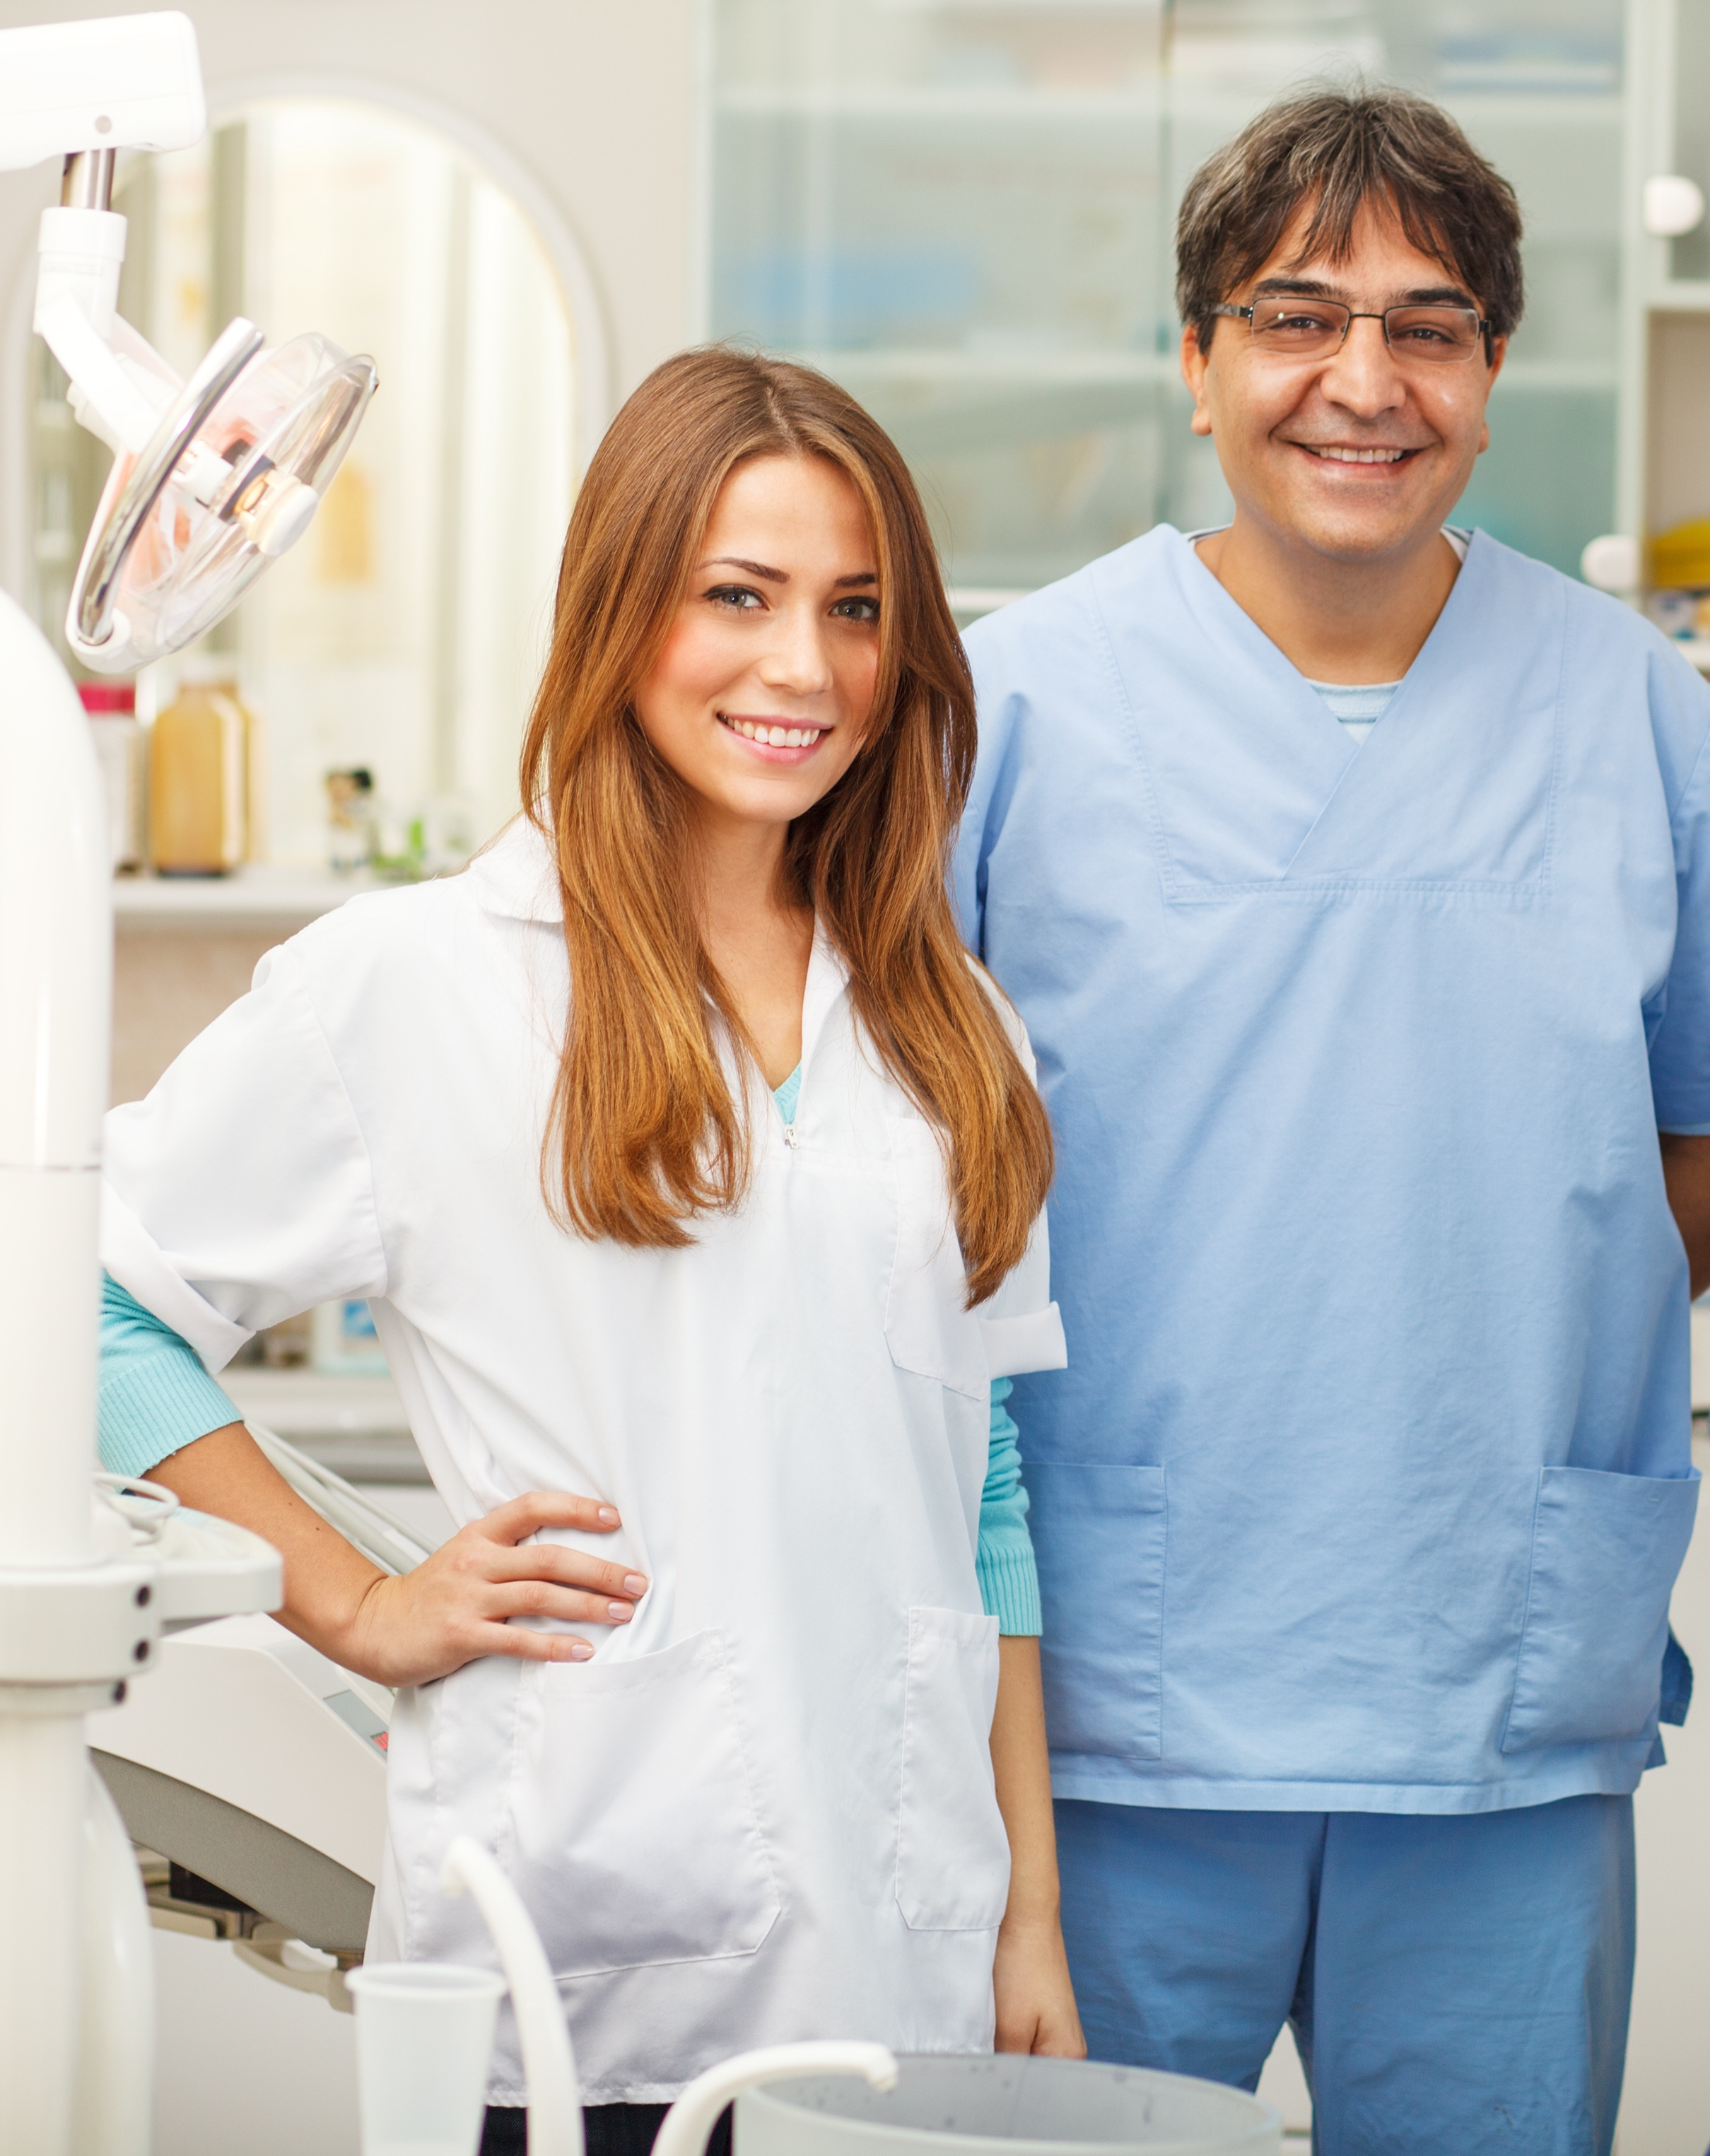 Dental Partnerships | JPA Dental Transitions